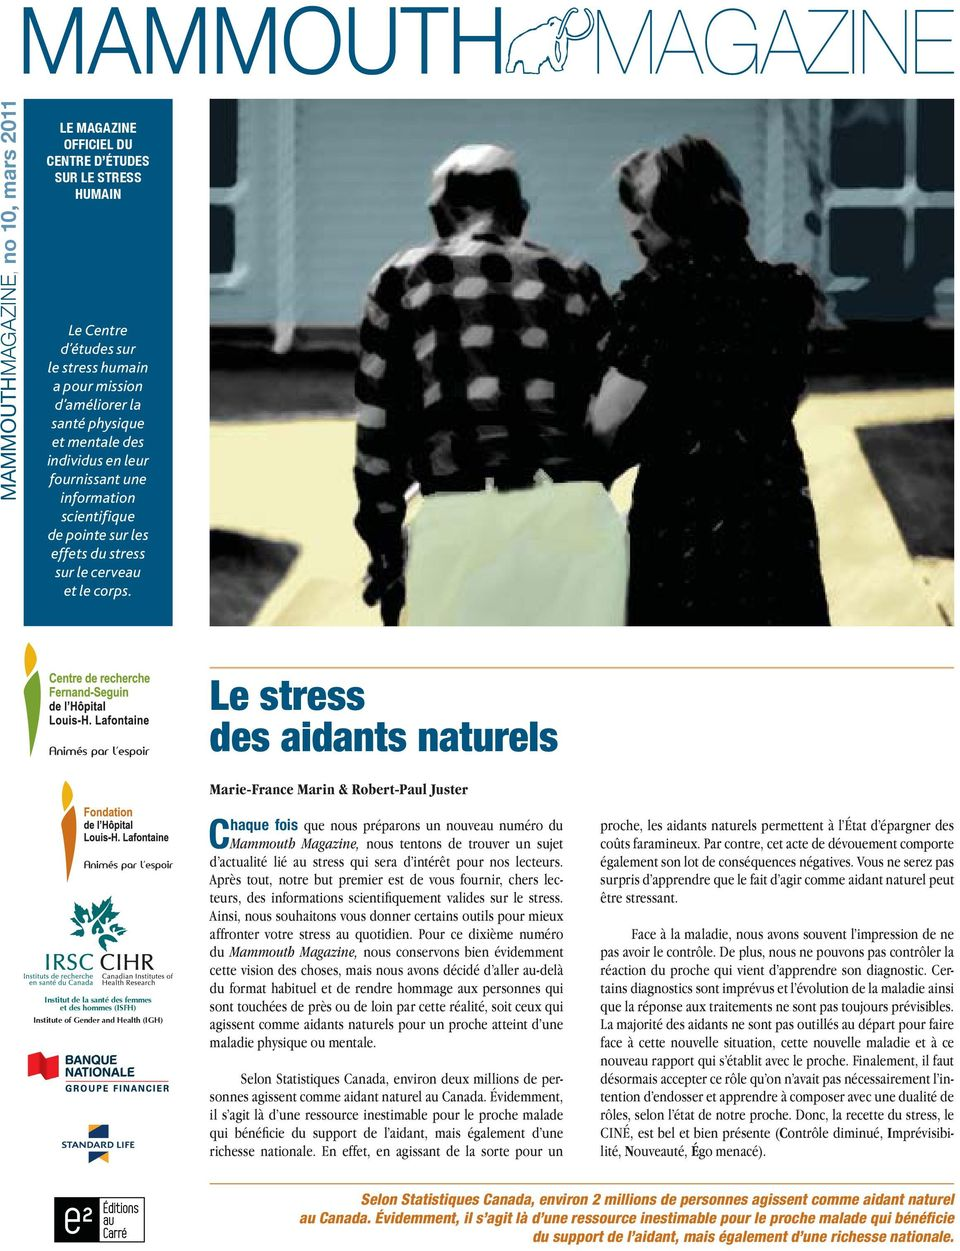 Le stress des aidants naturels Institut de la santé des femmes et des hommes (ISFH) Institute of Gender and Health (IGH) Marie-France Marin & Robert-Paul Juster Chaque fois que nous préparons un